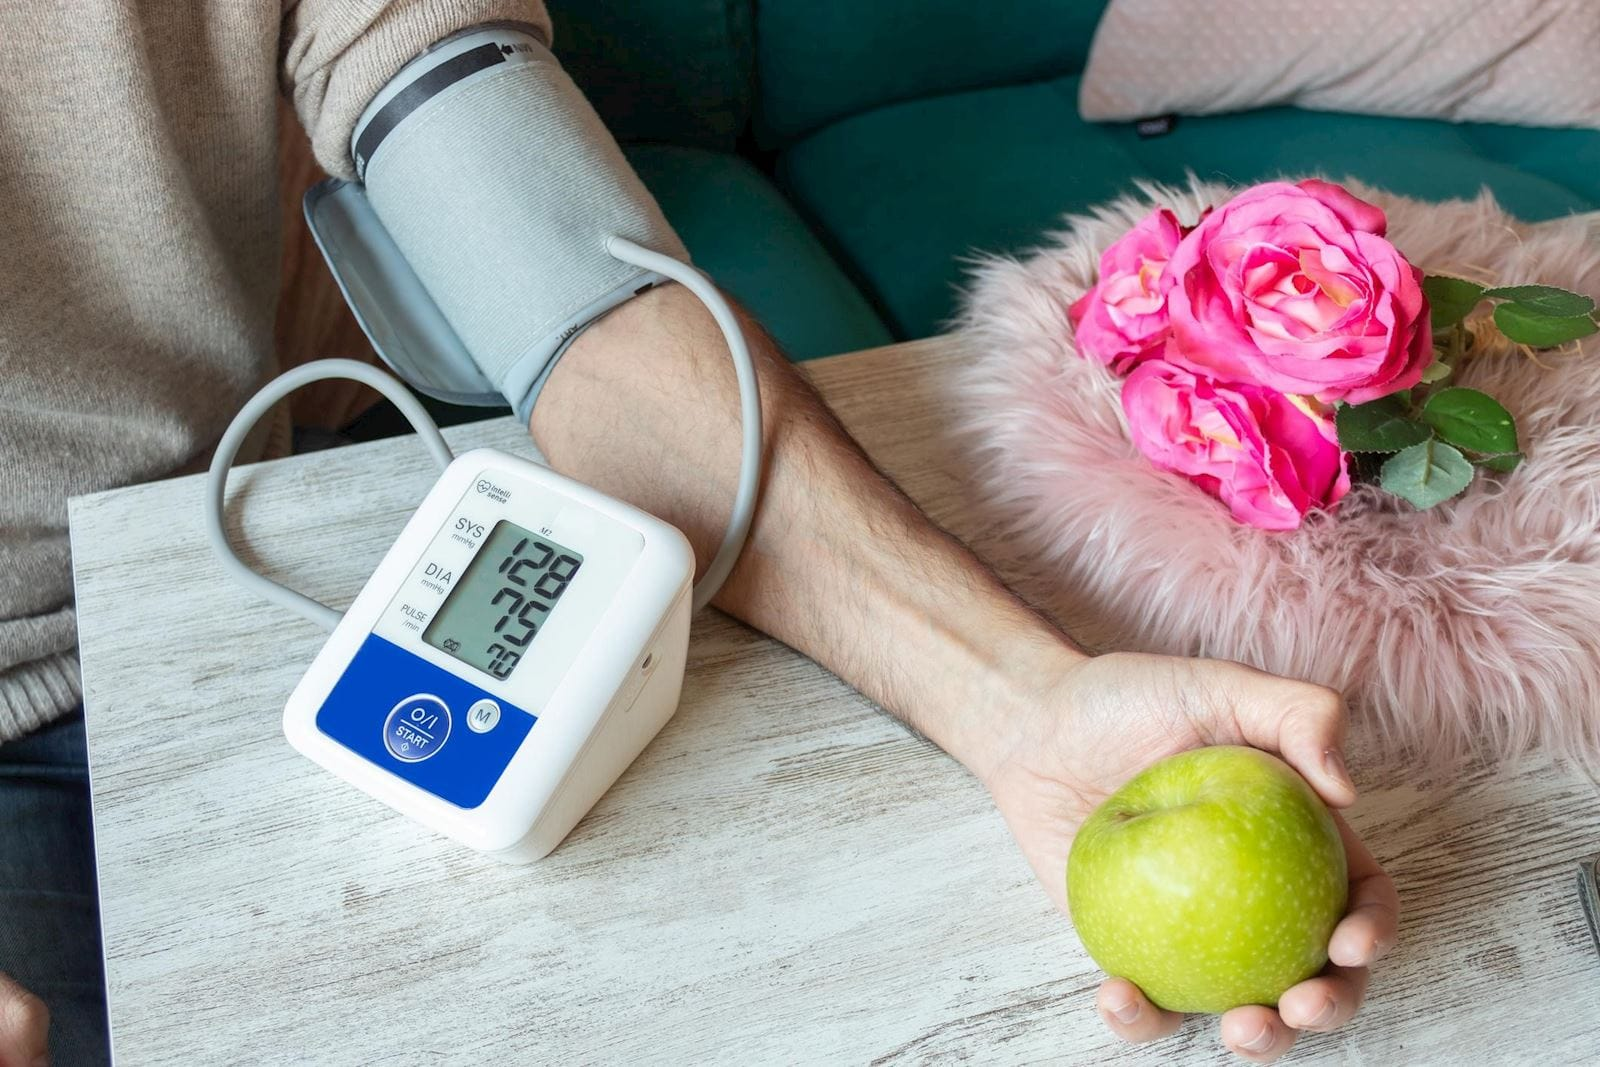 Man takes blood pressure with a cuff while holding an apple in his hand